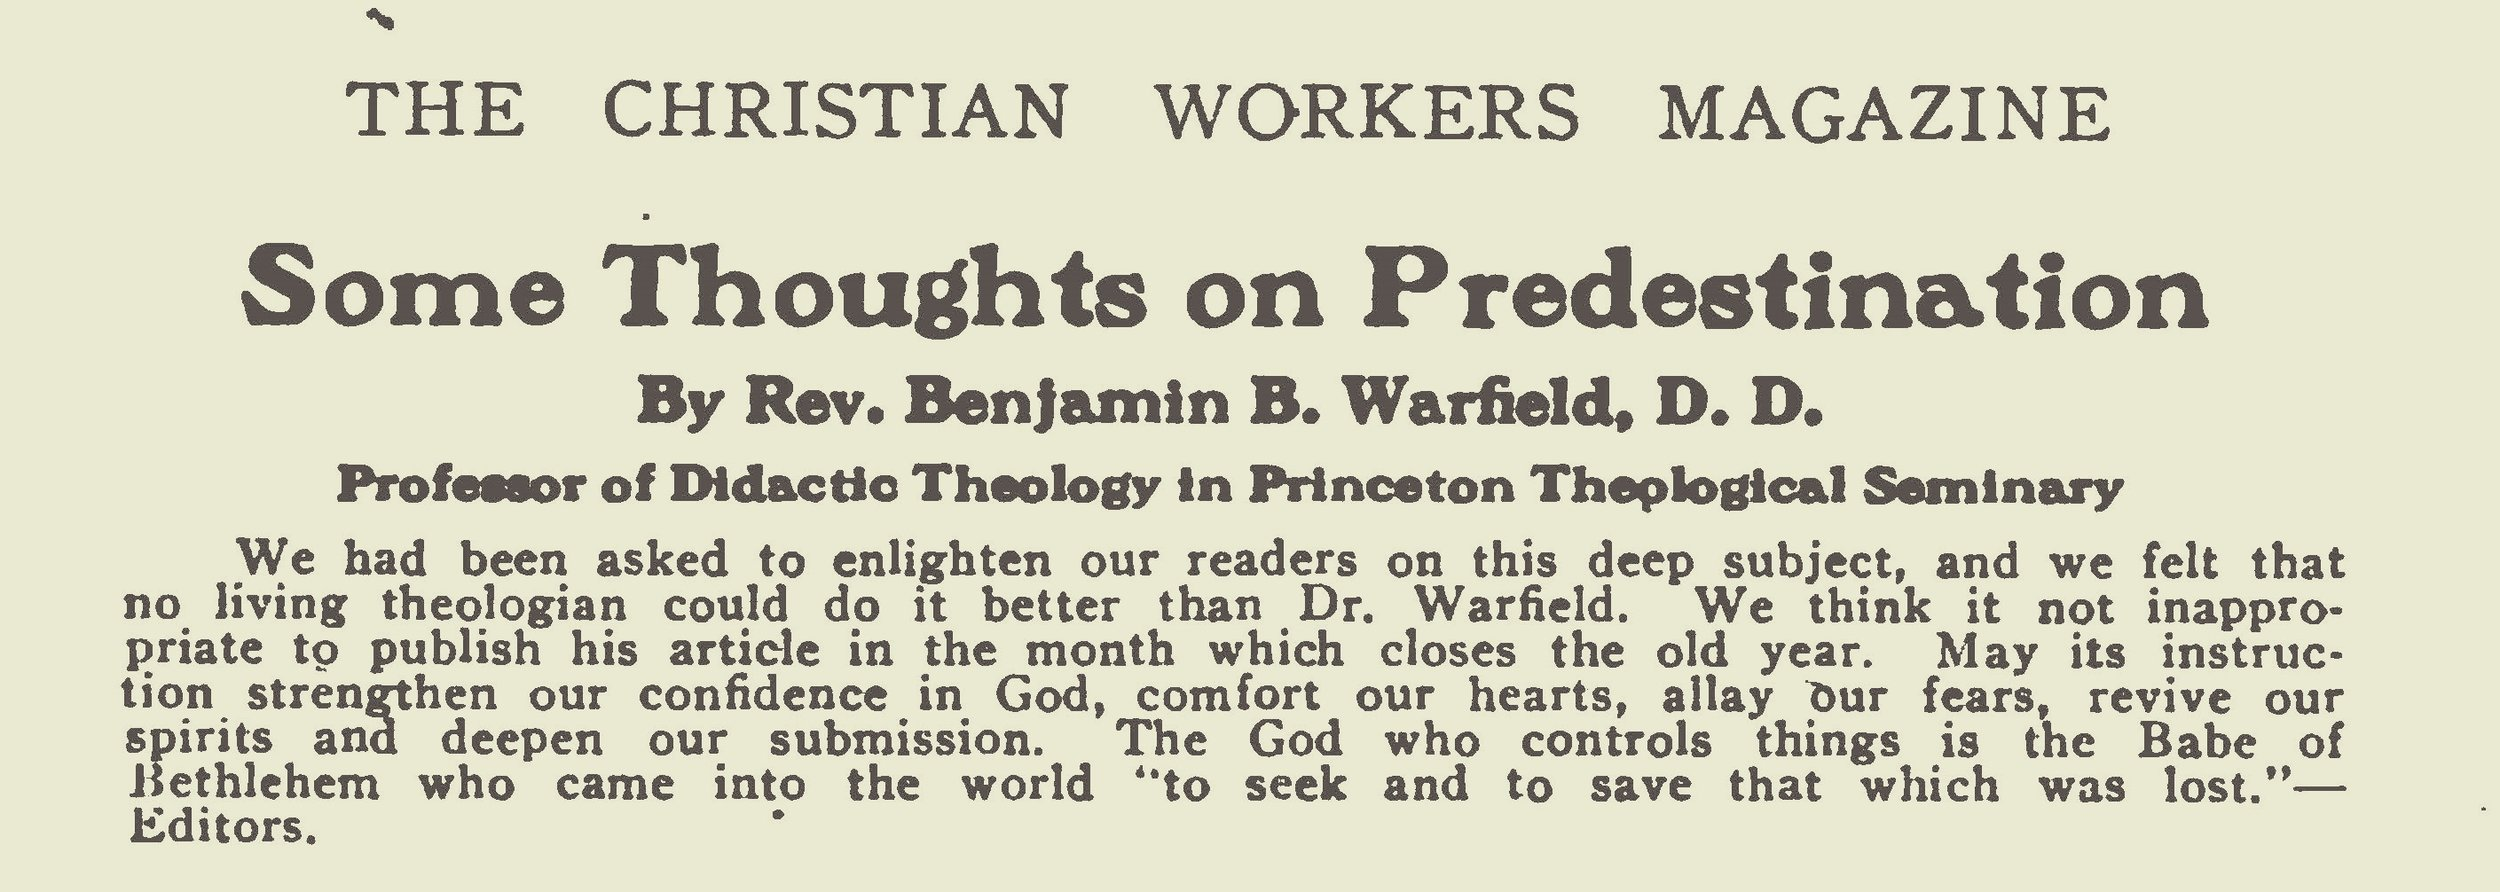 Warfield, Benjamin Breckinridge, Some Thoughts on Predestination Title Page.jpg